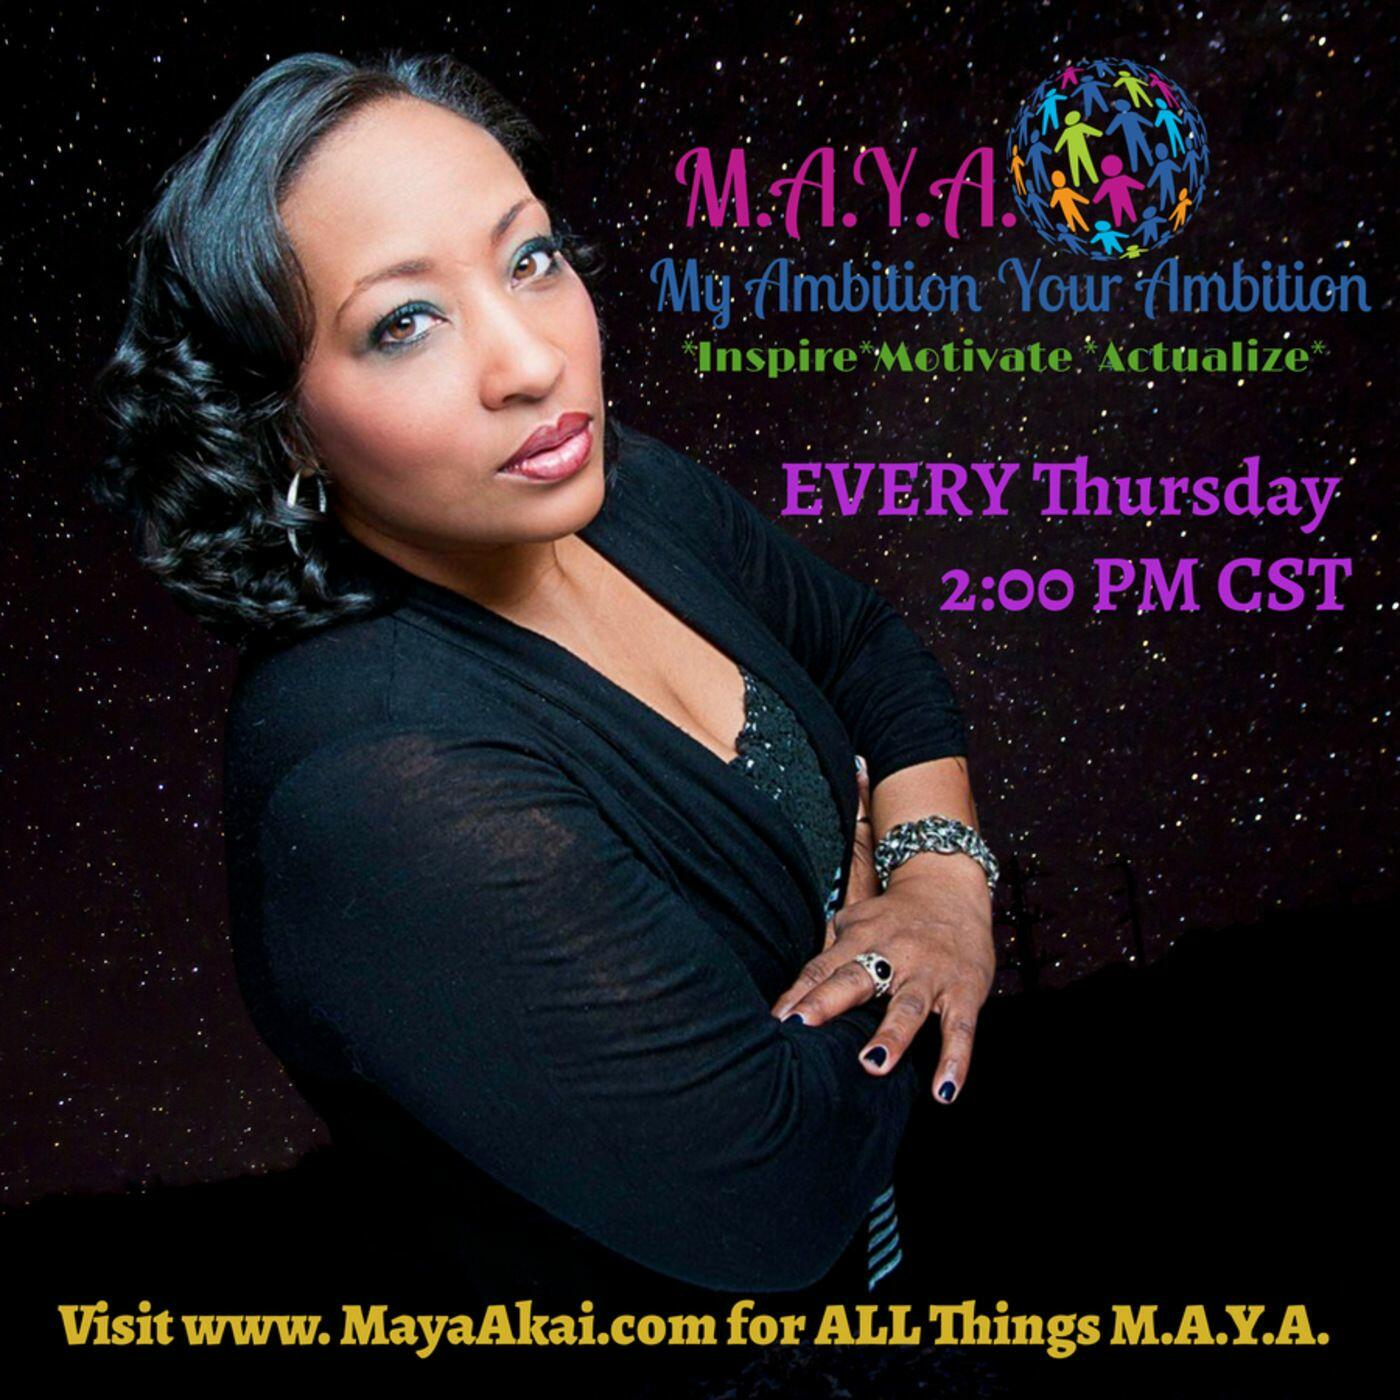 M.A.Y.A: My Ambition Your Ambition